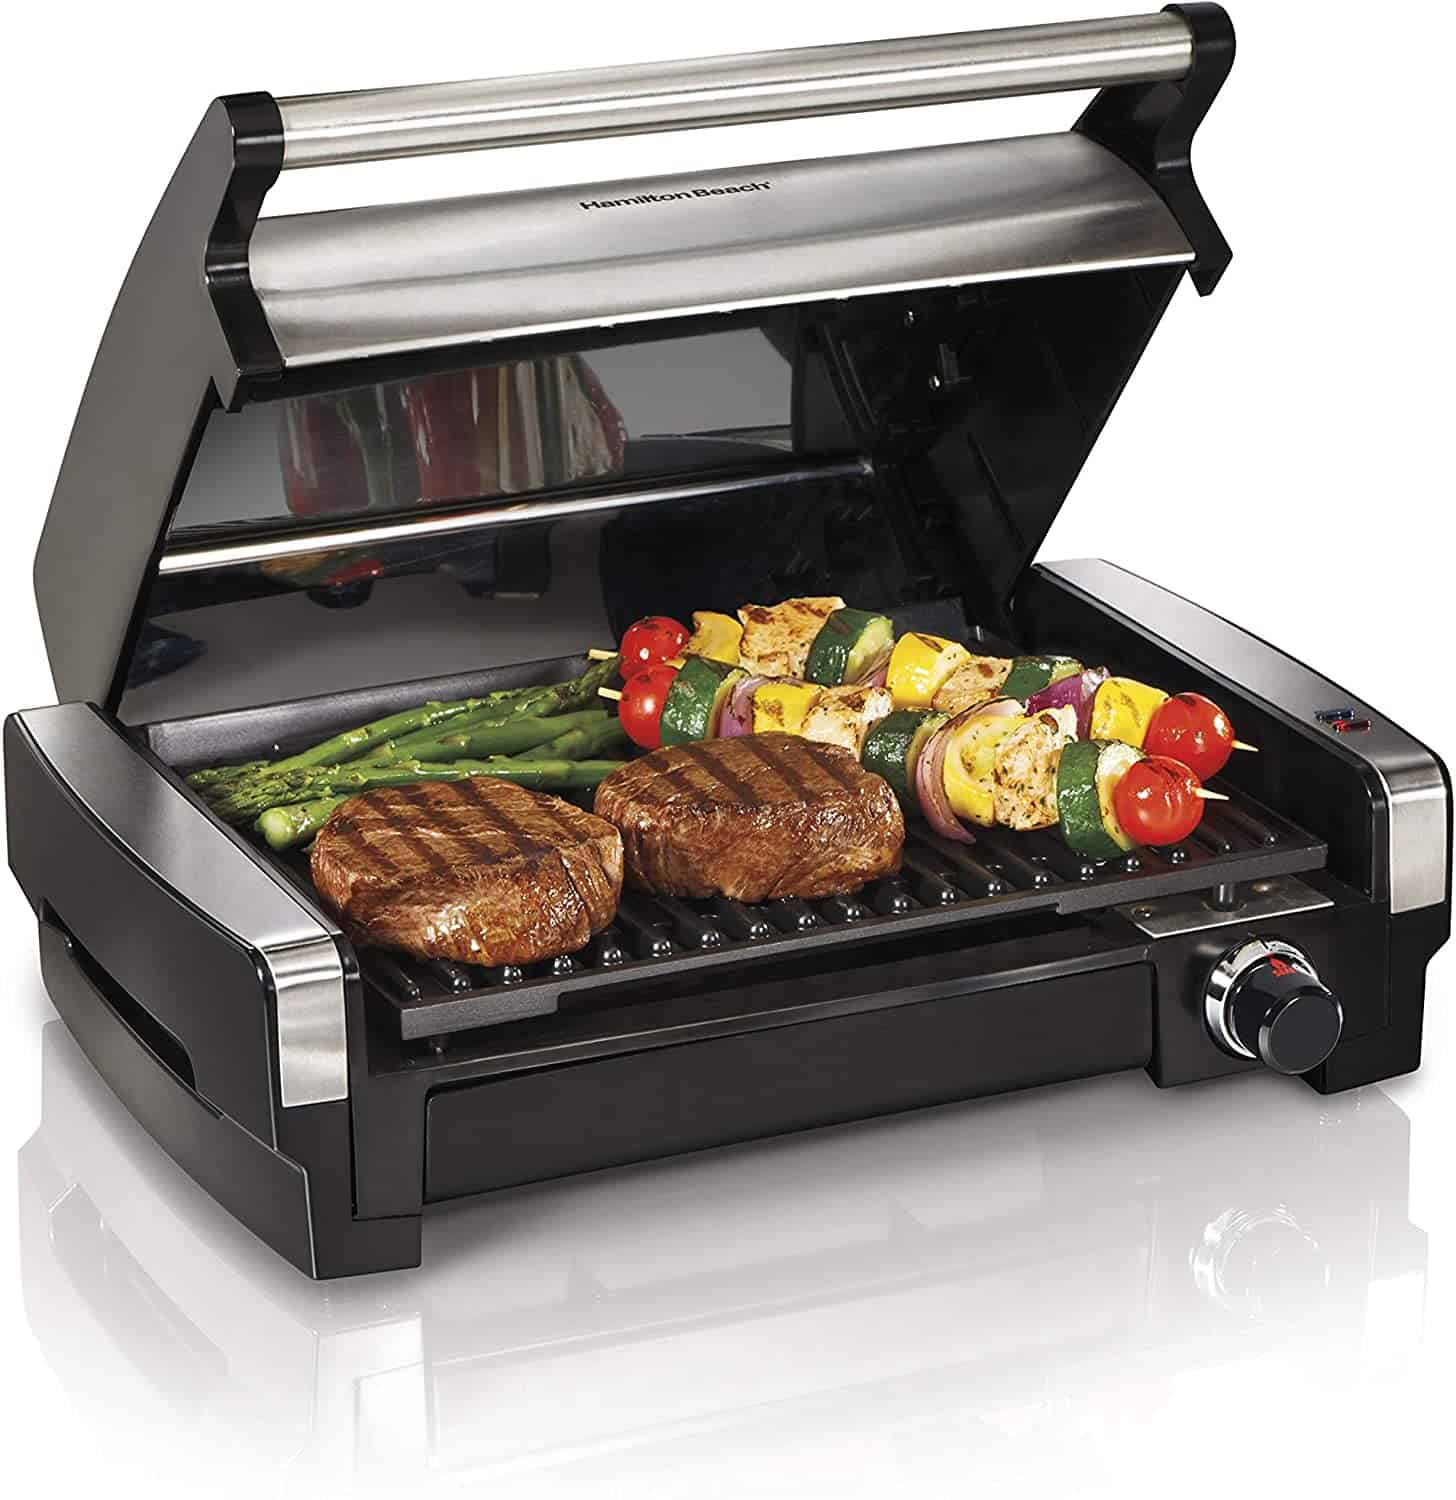 hamilton beach electric indoor grill one of the best tabletop grills